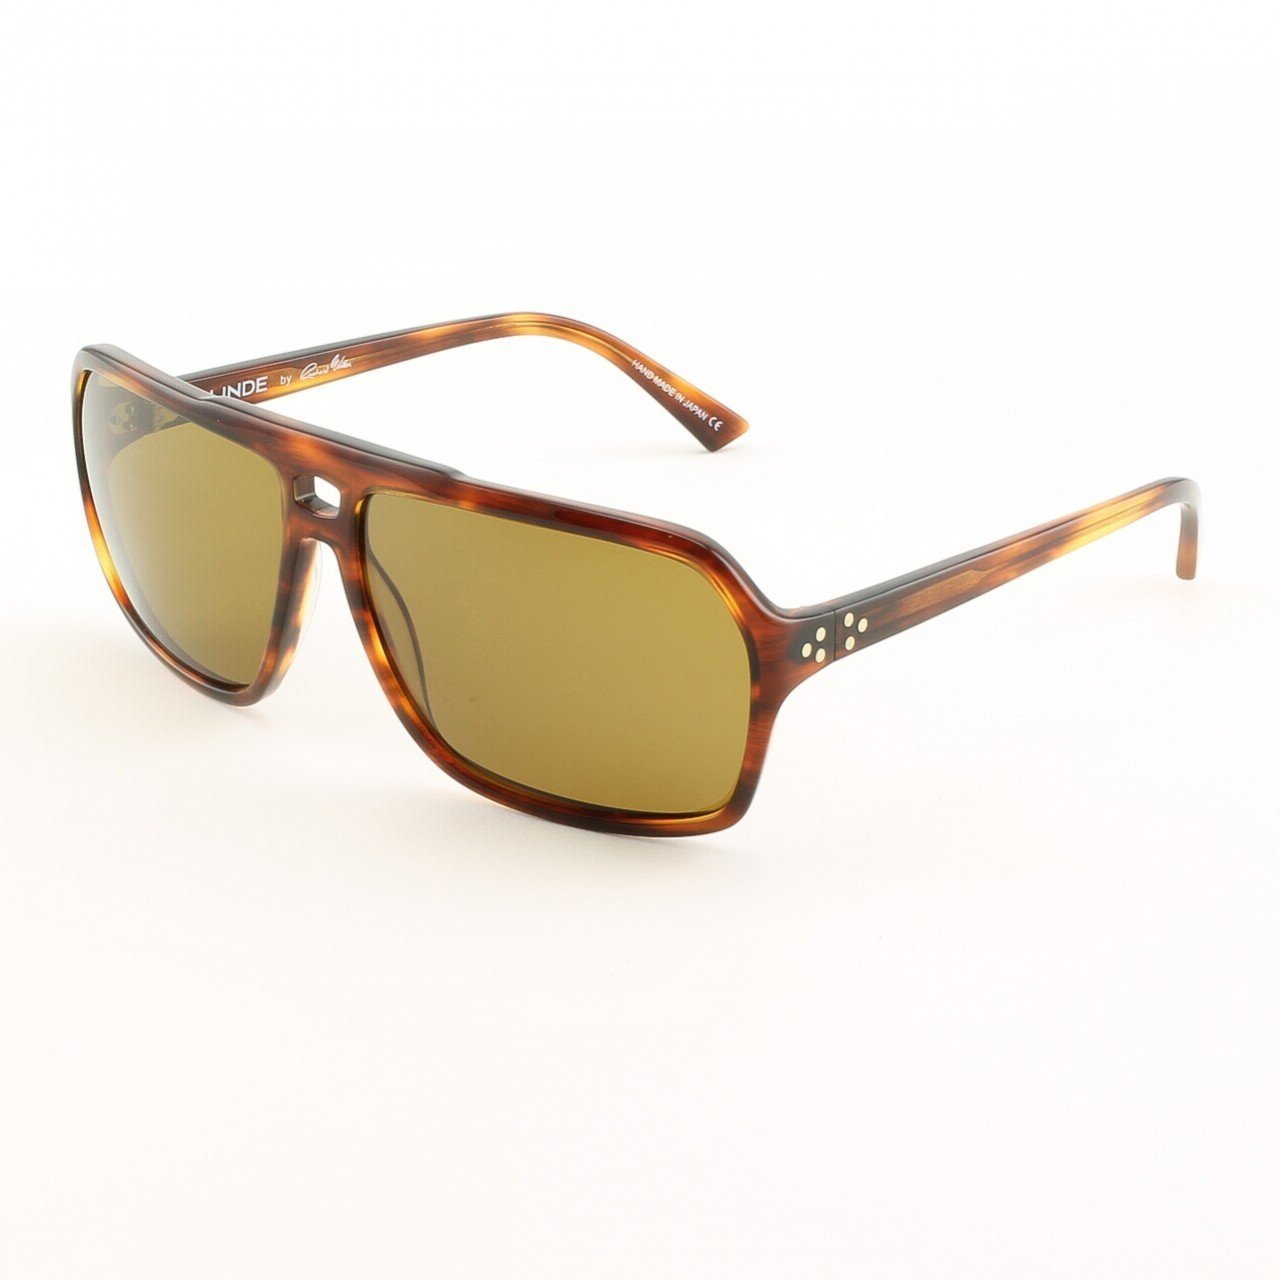 Blinde Mine All Mine Women's Sunglasses Col. Tortoise with Brown Lenses